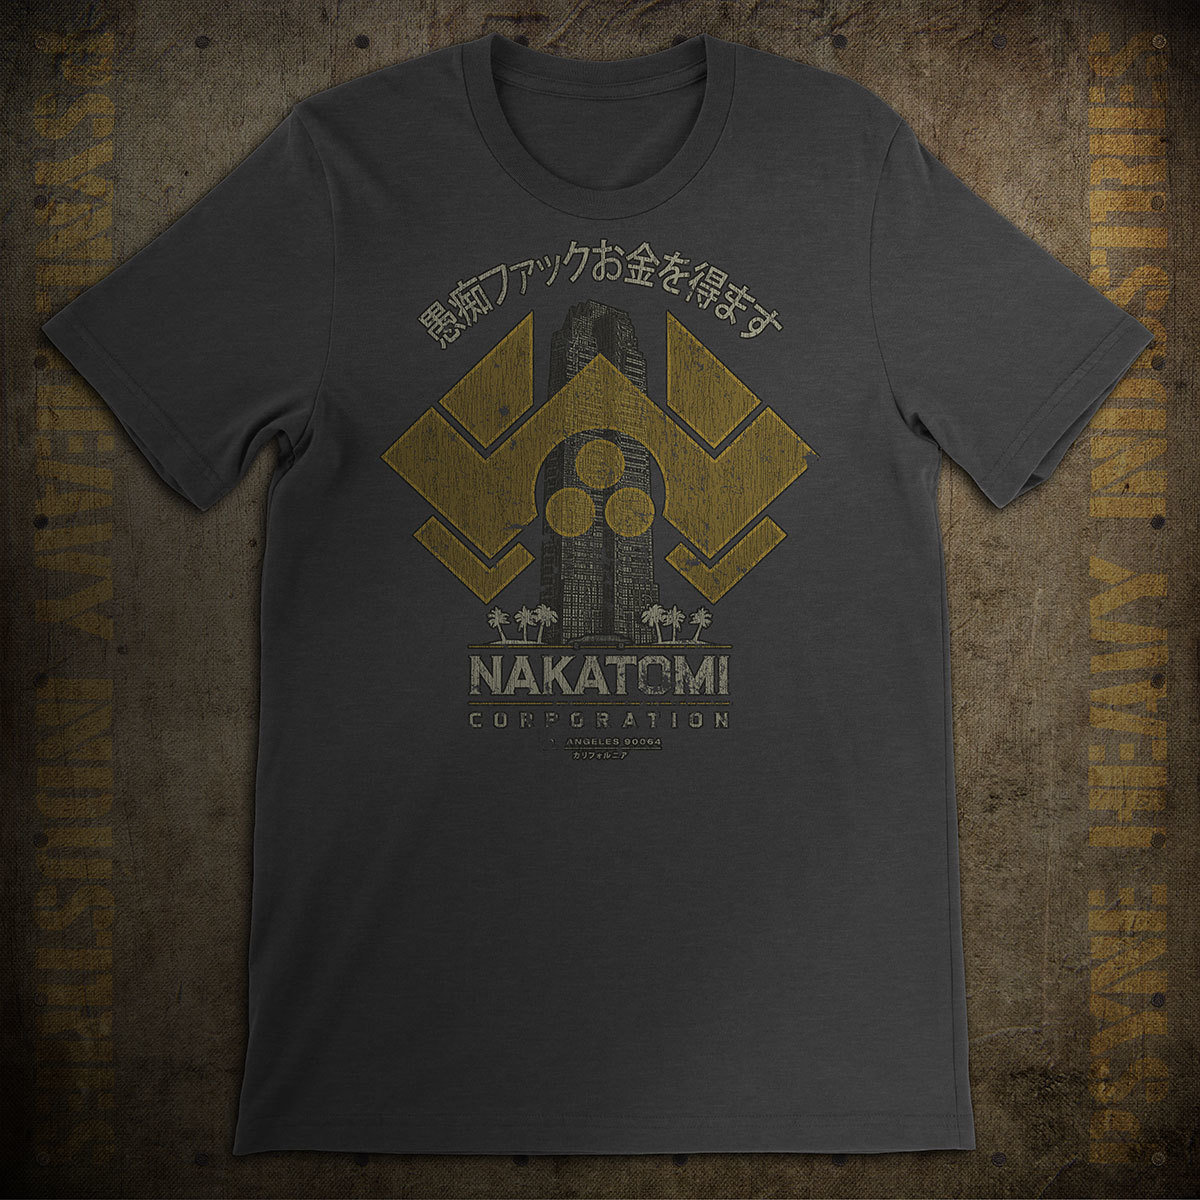 Nakatomi Corporation Vintage Die Hard T-Shirt